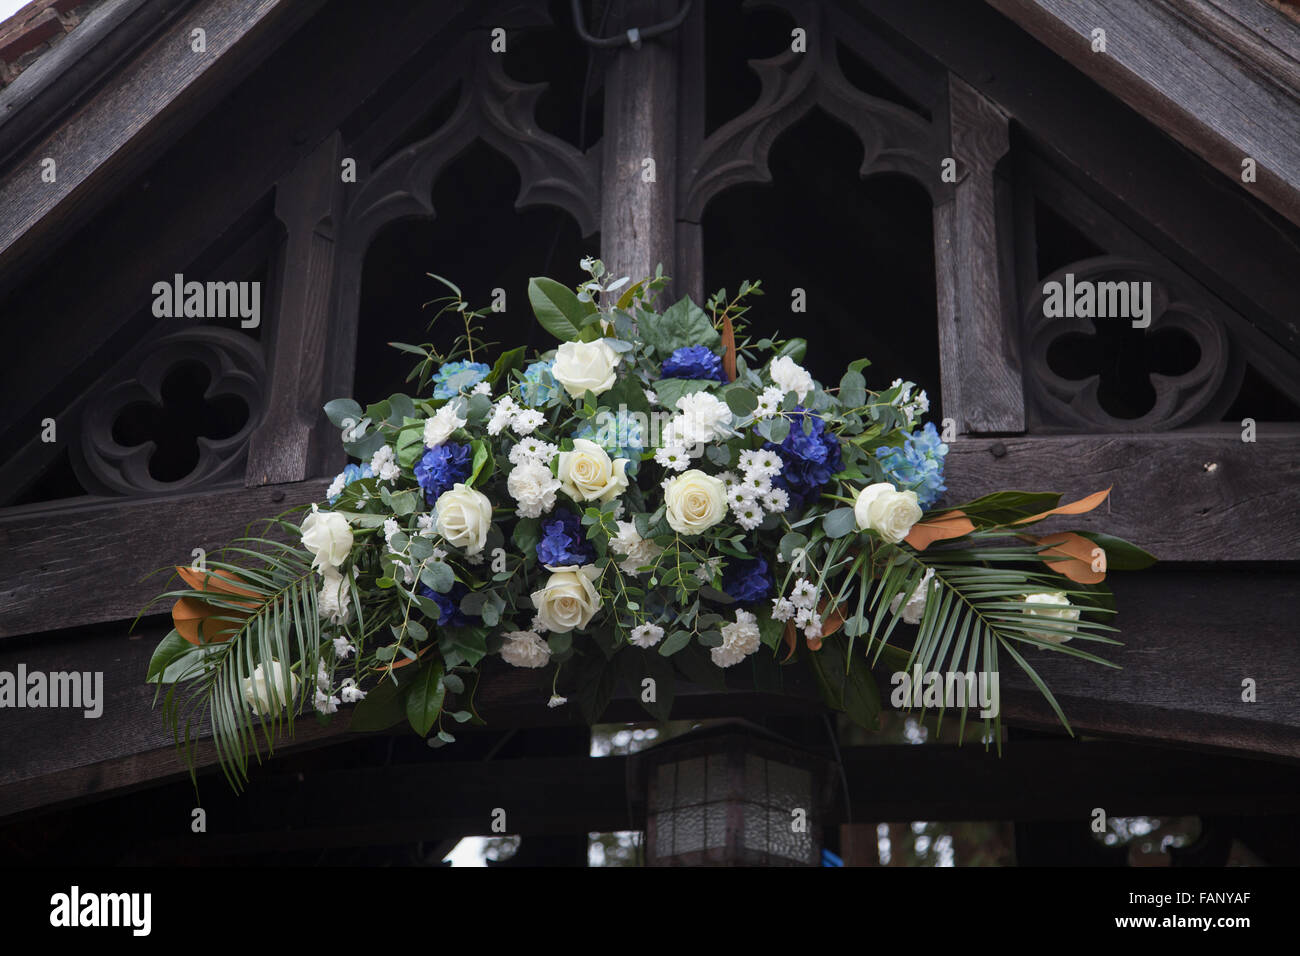 Blue and white wedding day flowers wedding flowers dressing a blue and white wedding day flowers wedding flowers dressing a church in england izmirmasajfo